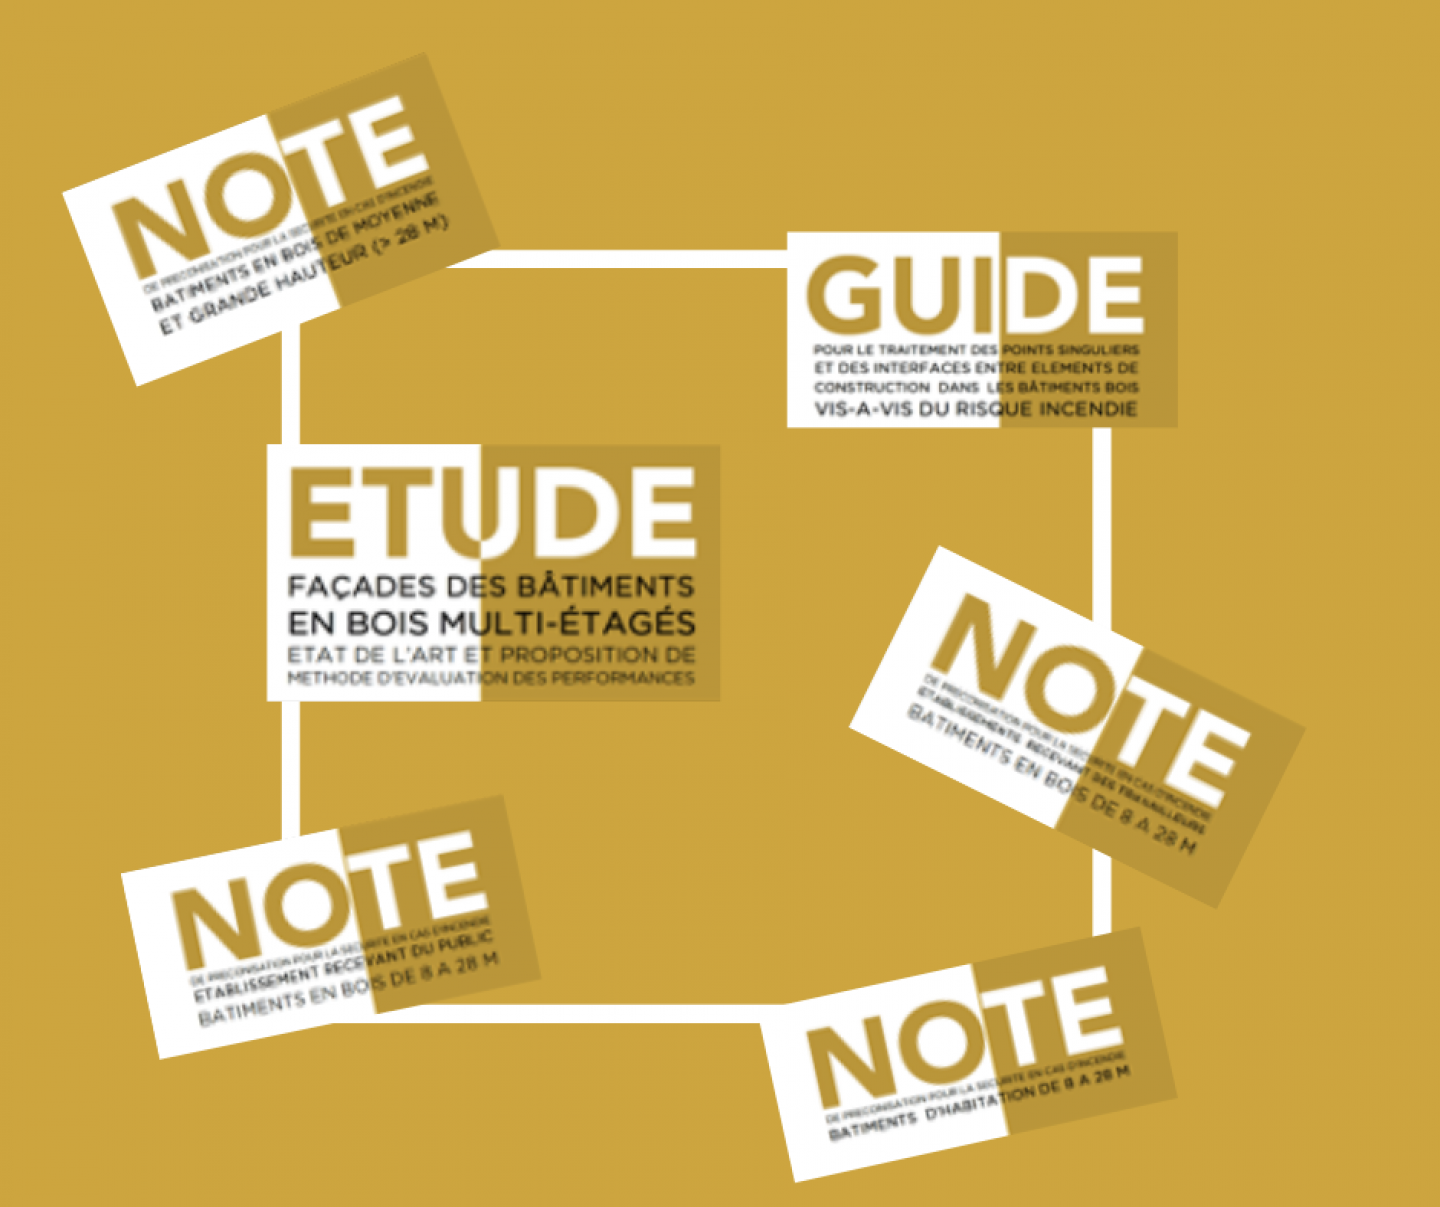 guide note etude